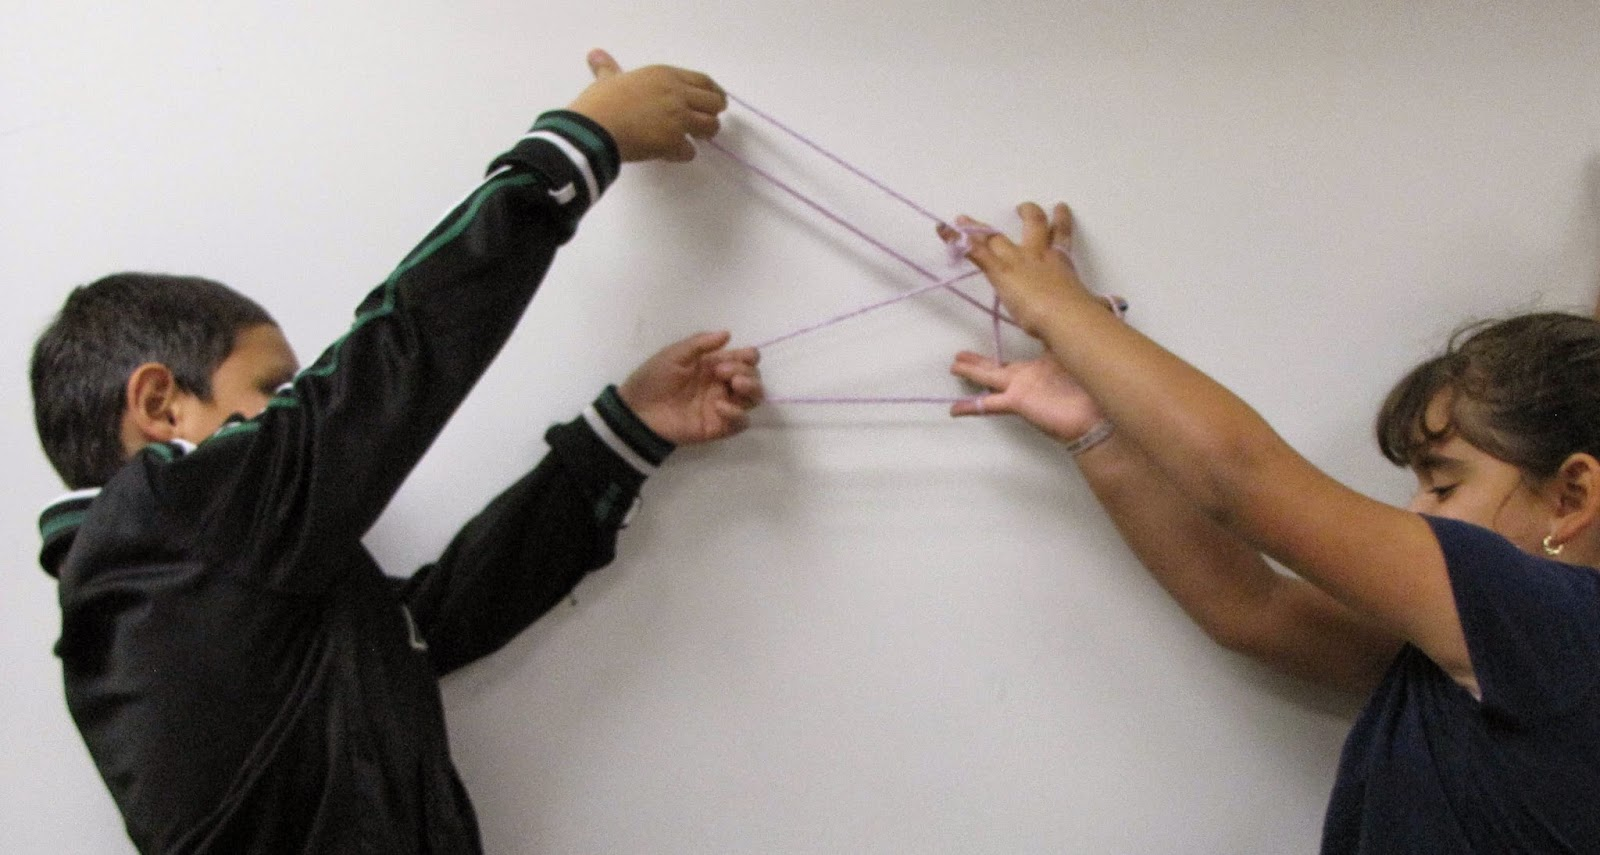 two students show a figure they invented